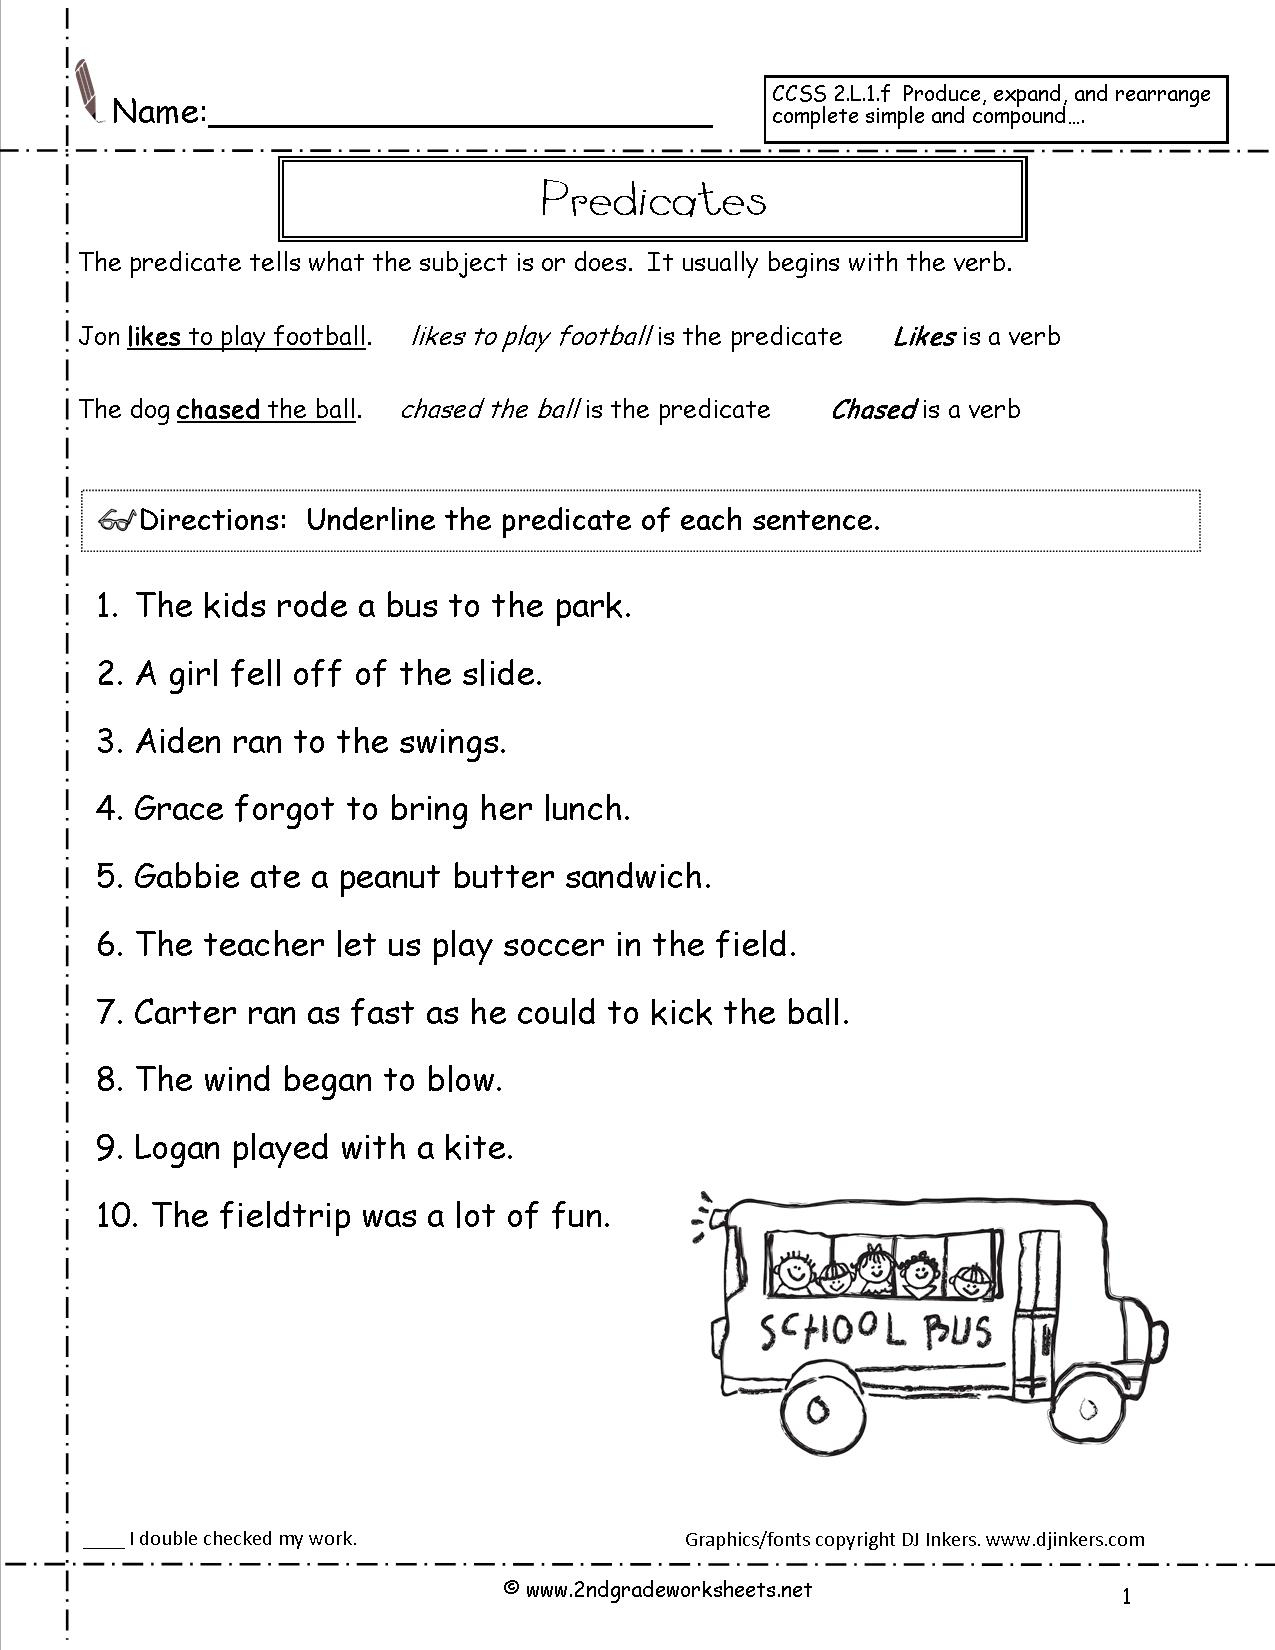 Second Grade Sentences Worksheets, Ccss 2.l.1.f Worksheets. | Free Printable Sentence Correction Worksheets